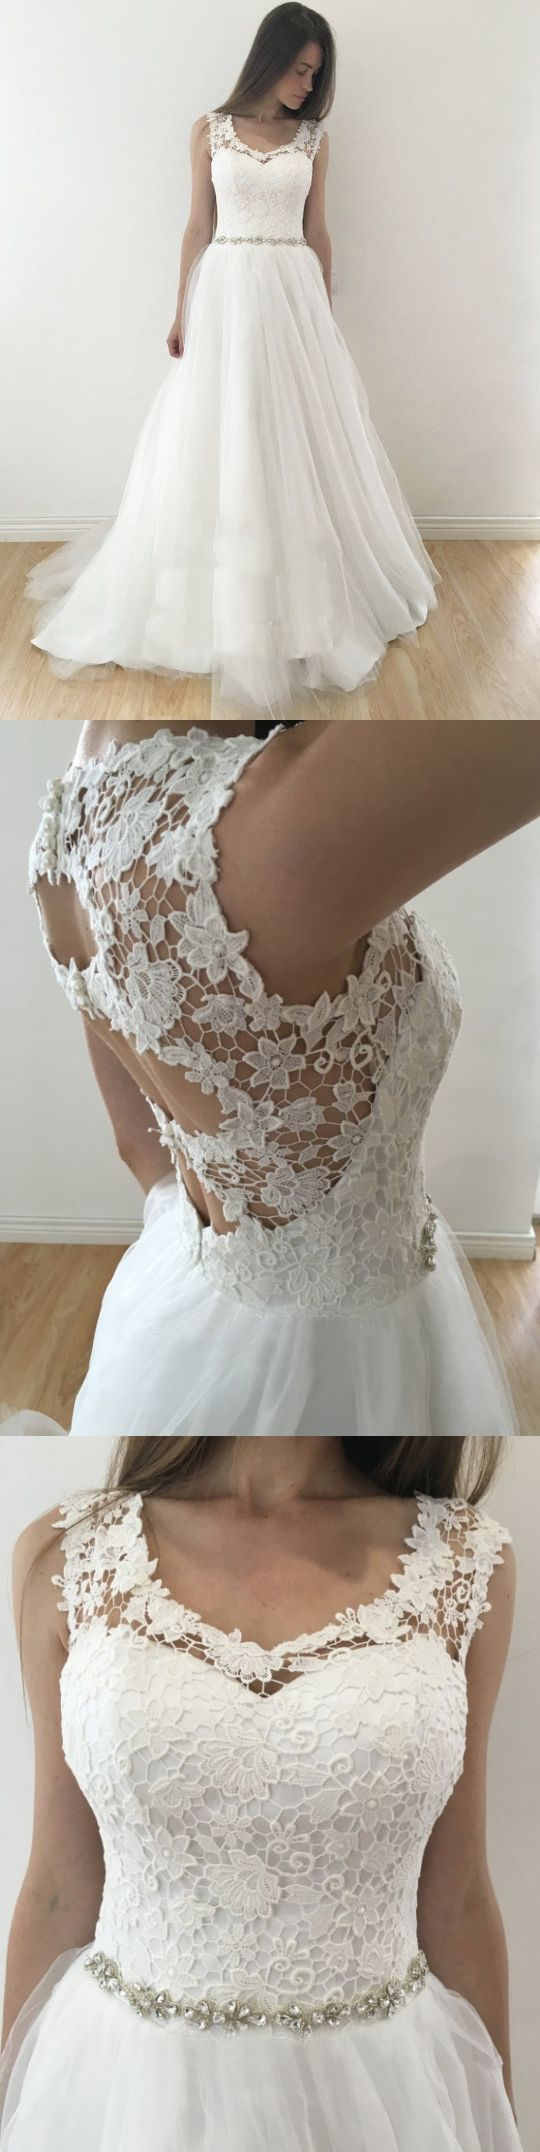 Unique wedding dresses aline rhinestone lace long chic bridal gown